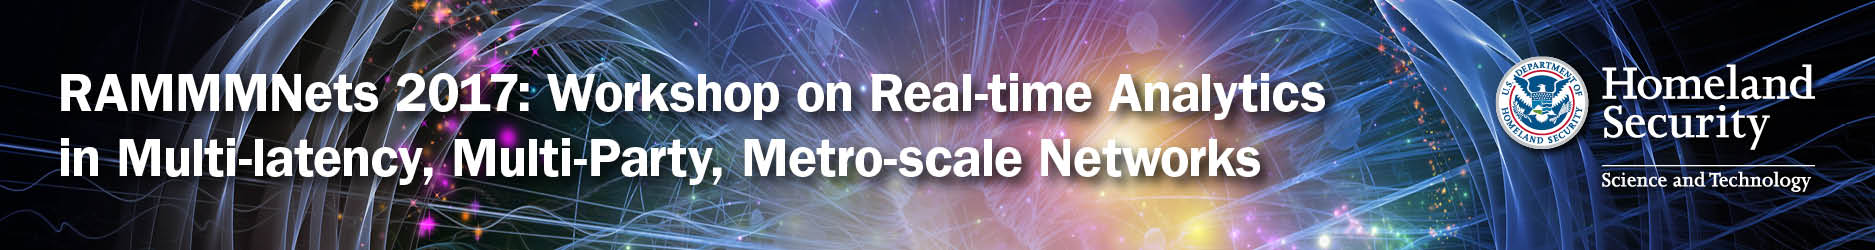 RAMMMNets 2017:<br/> Workshop on Real-time Analytics in Multi-latency,  Multi-Party, Metro-scale Networks